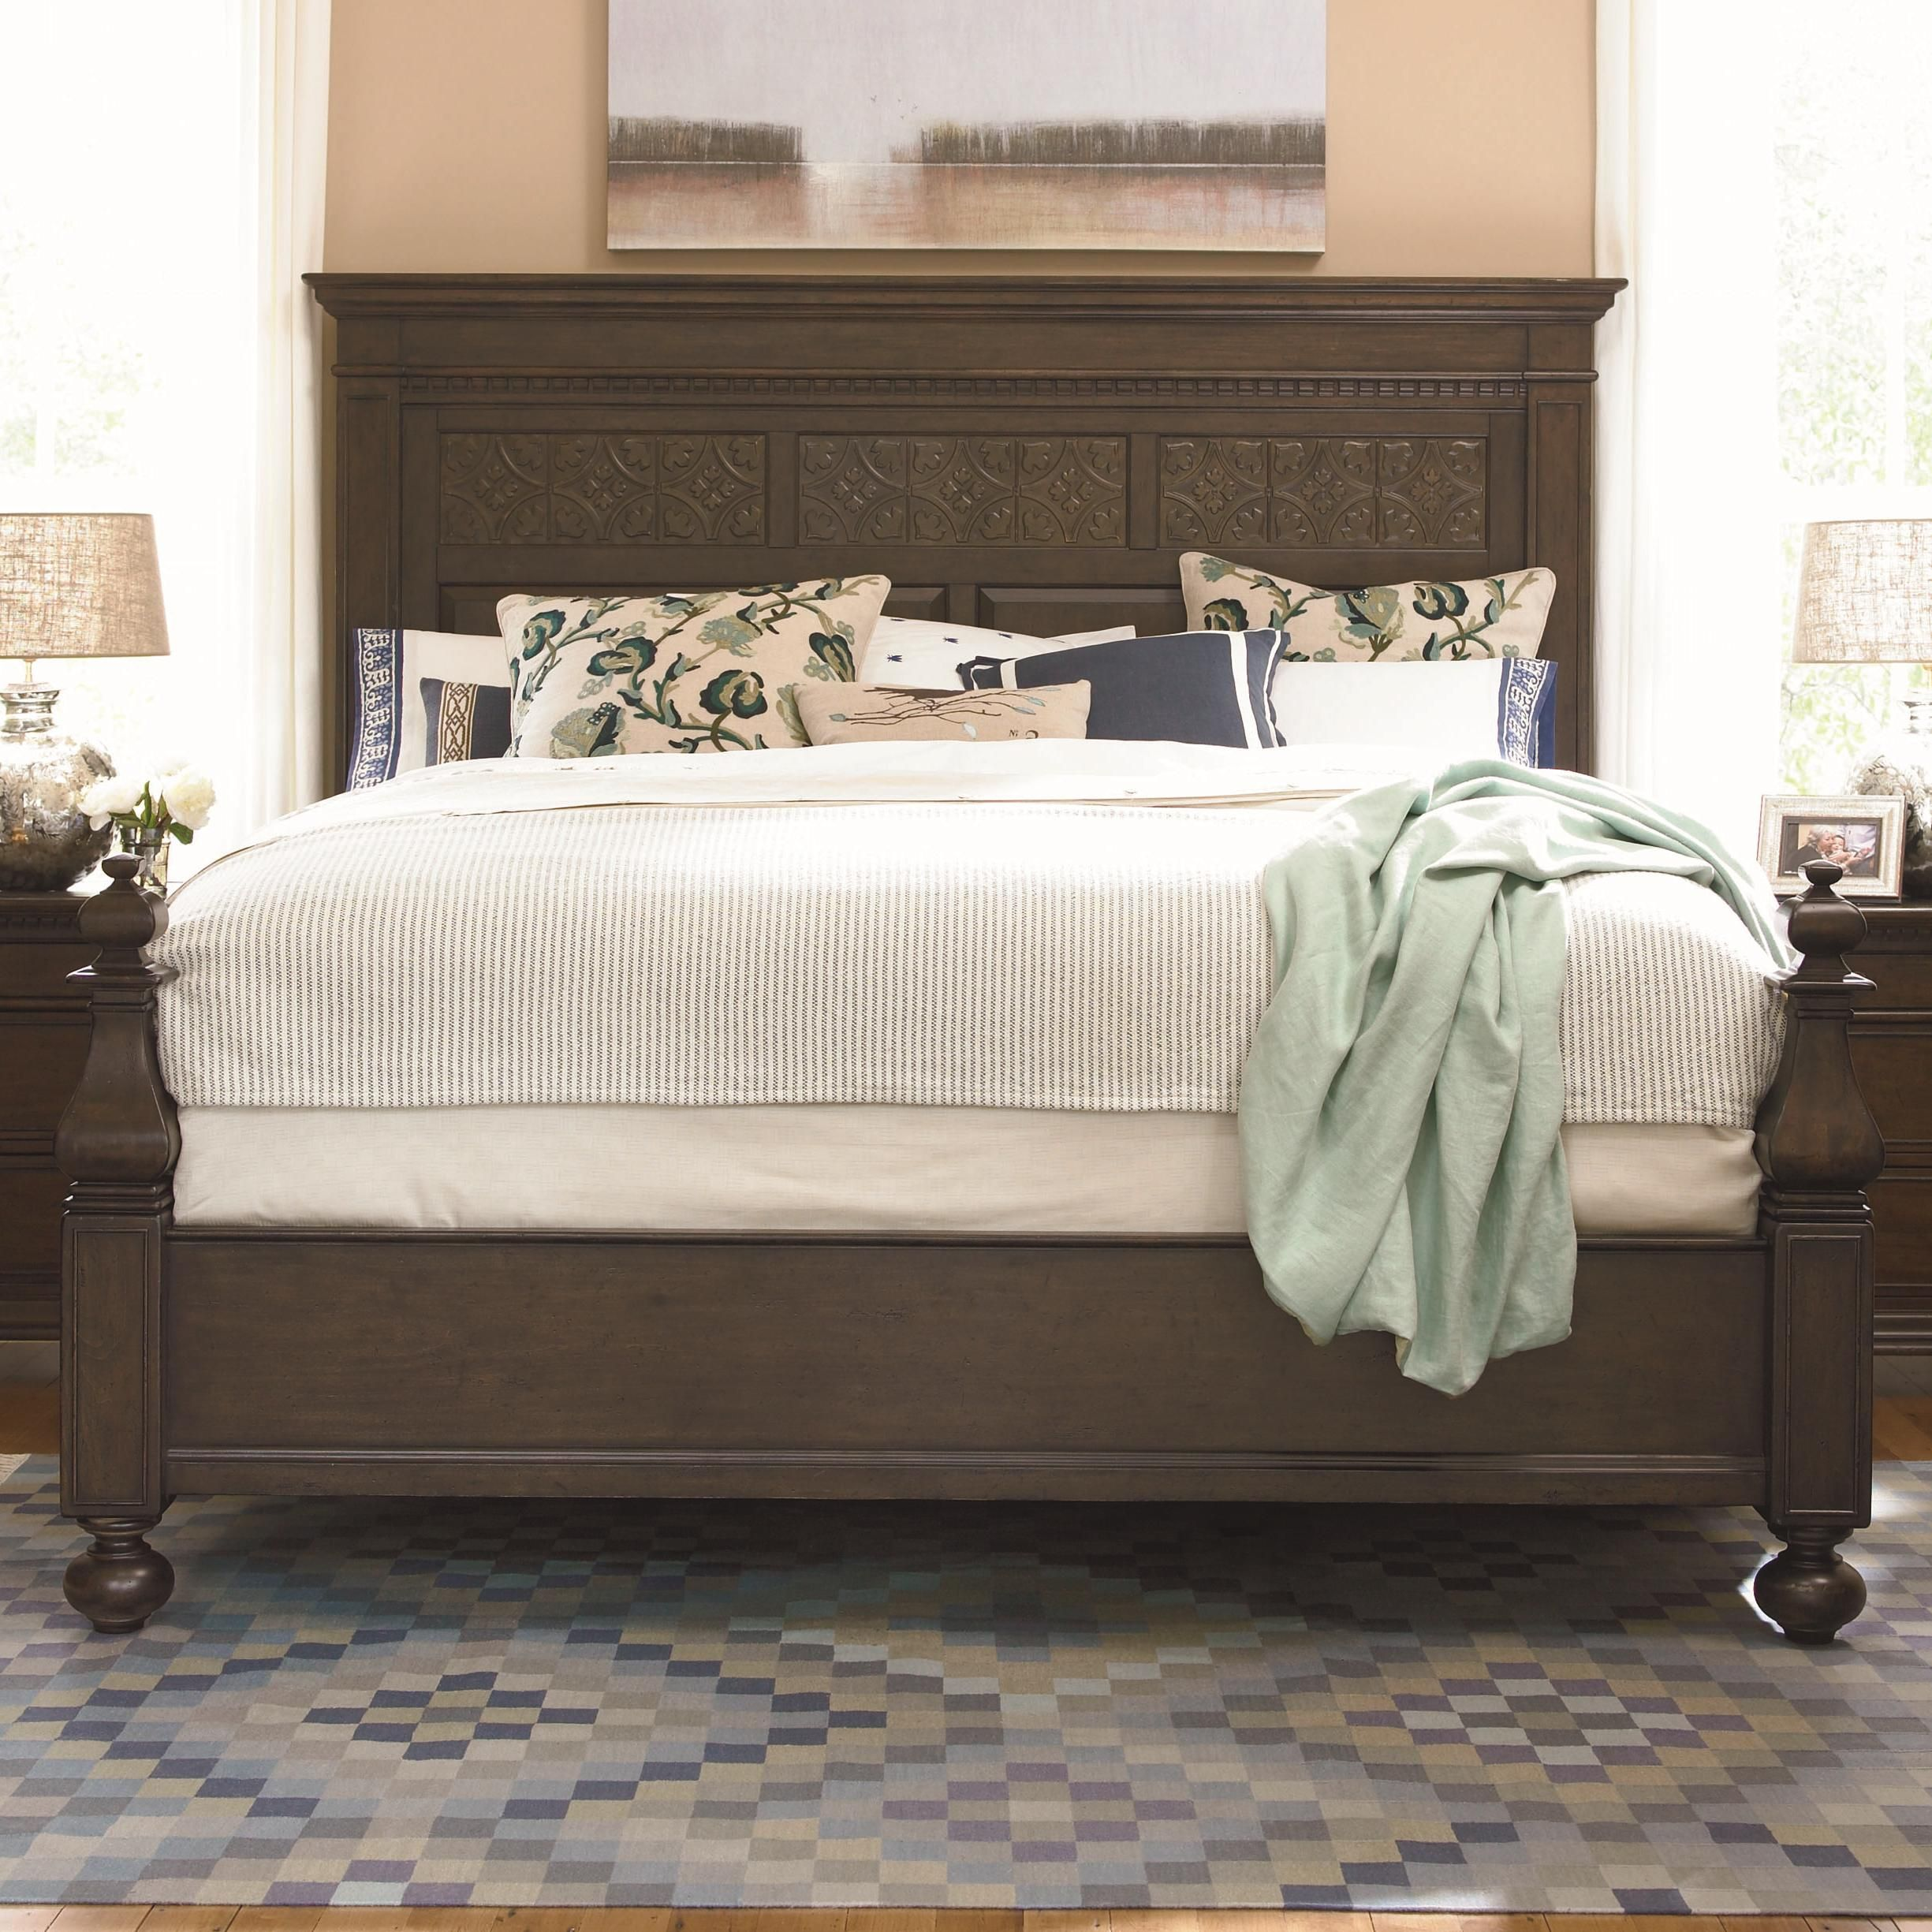 aunt peggy s bed by paula deen at dubois think this will be my new